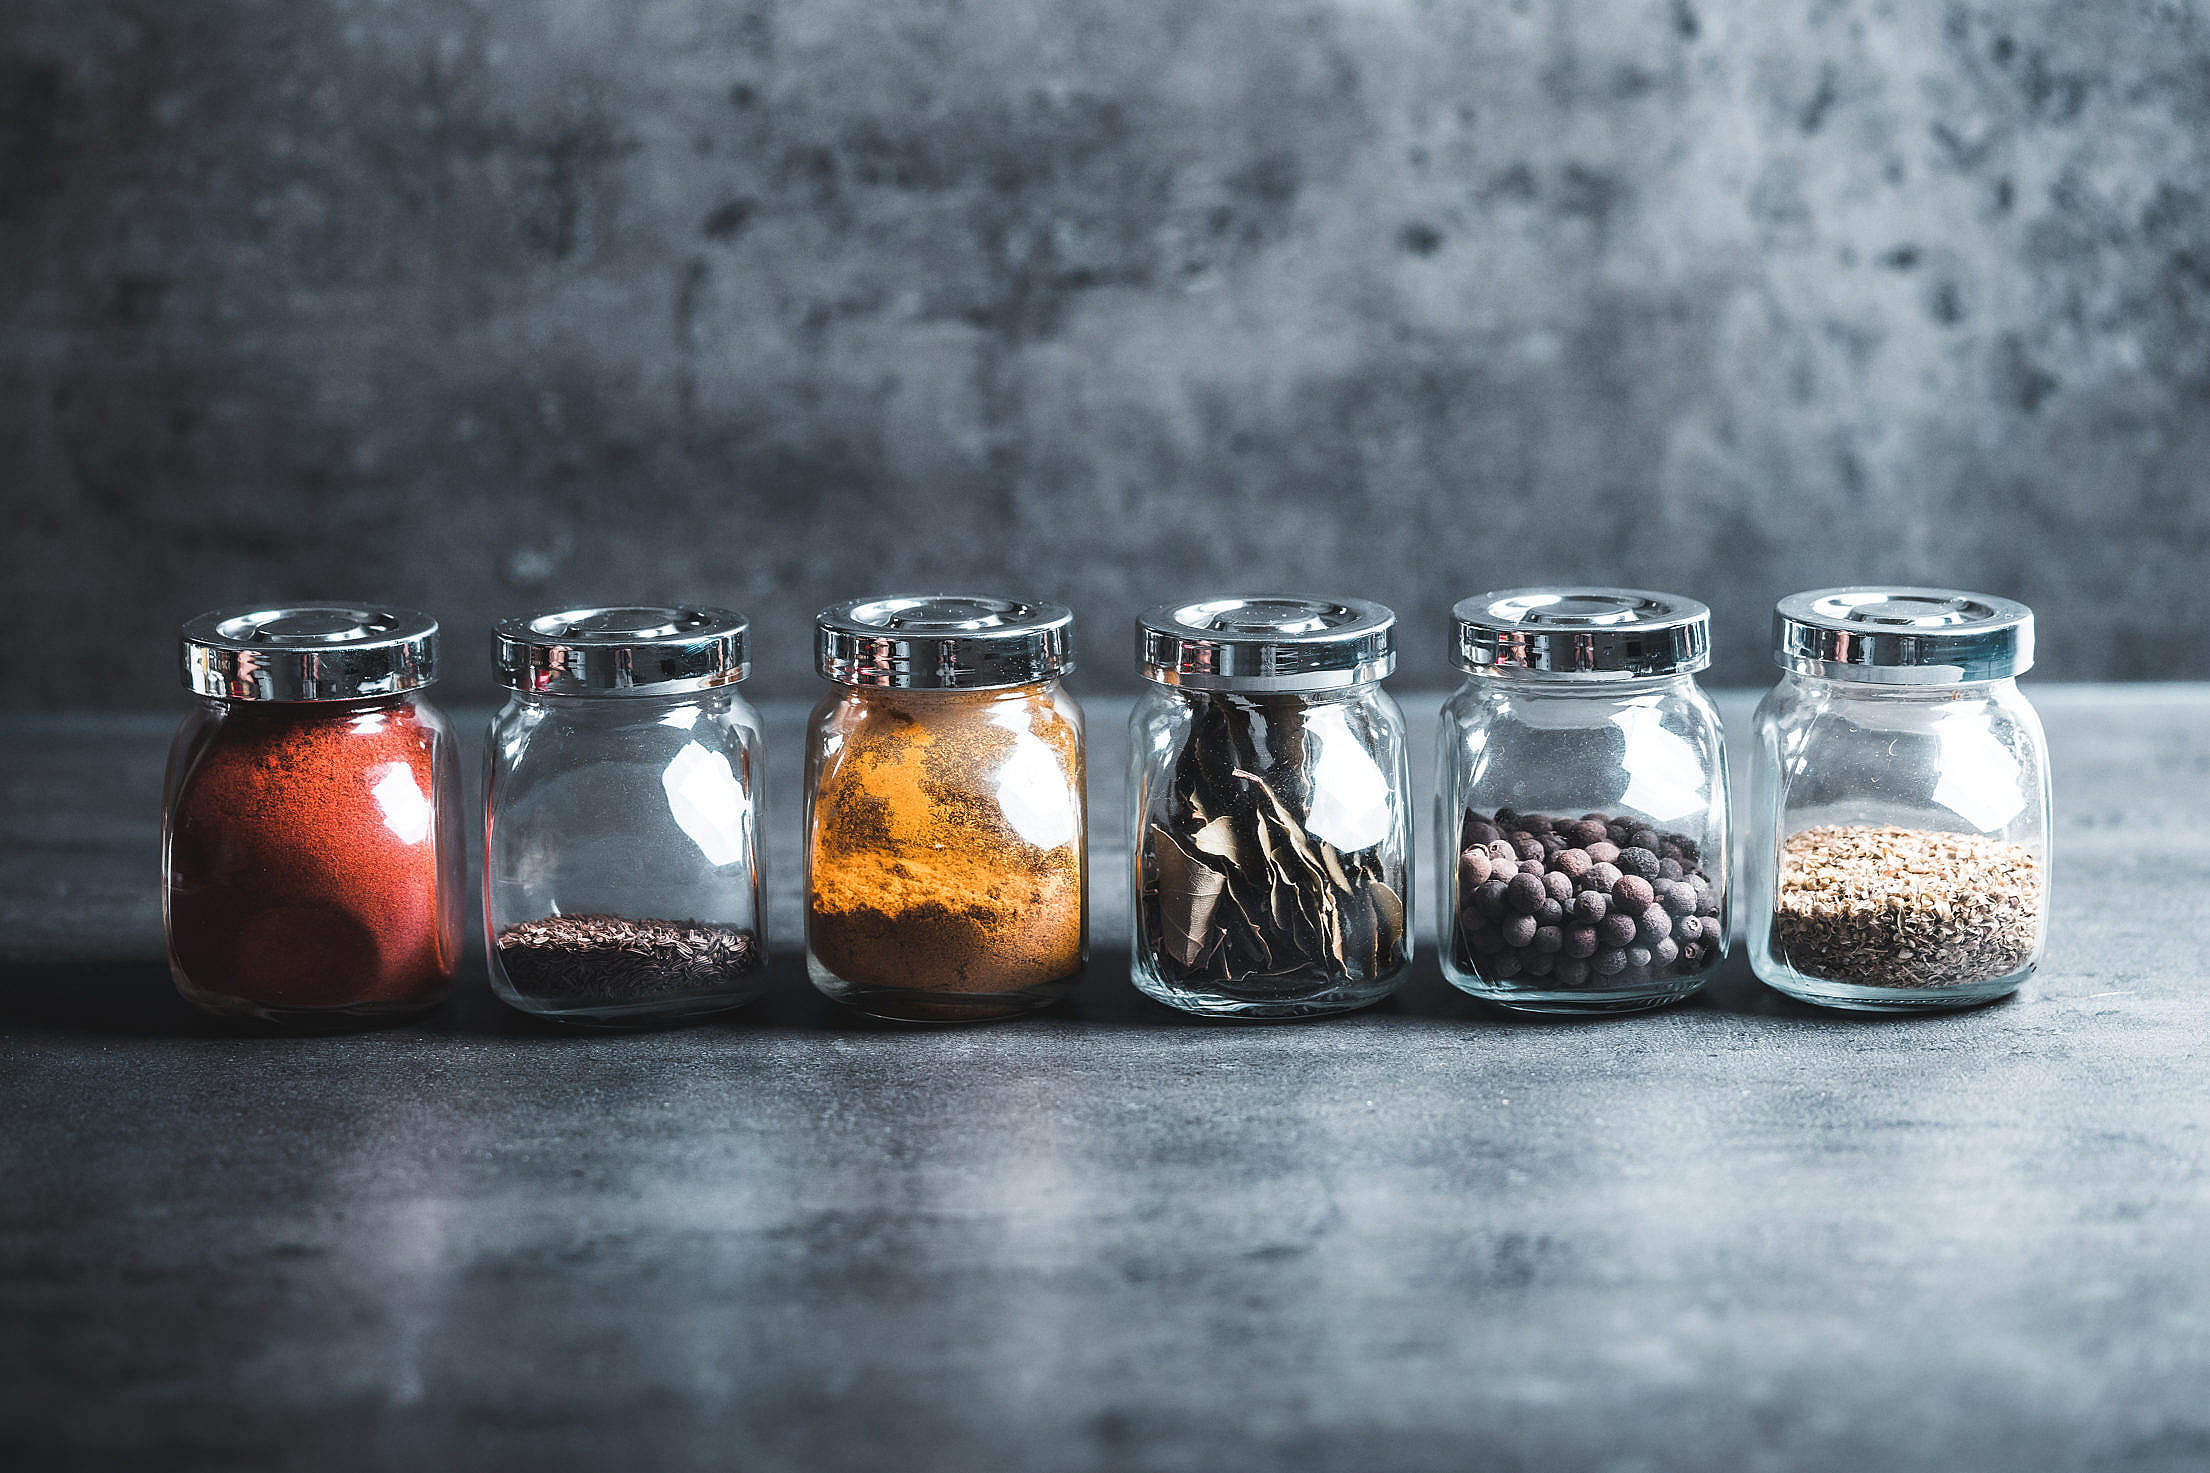 Different Kinds of Spices Free Stock Photo